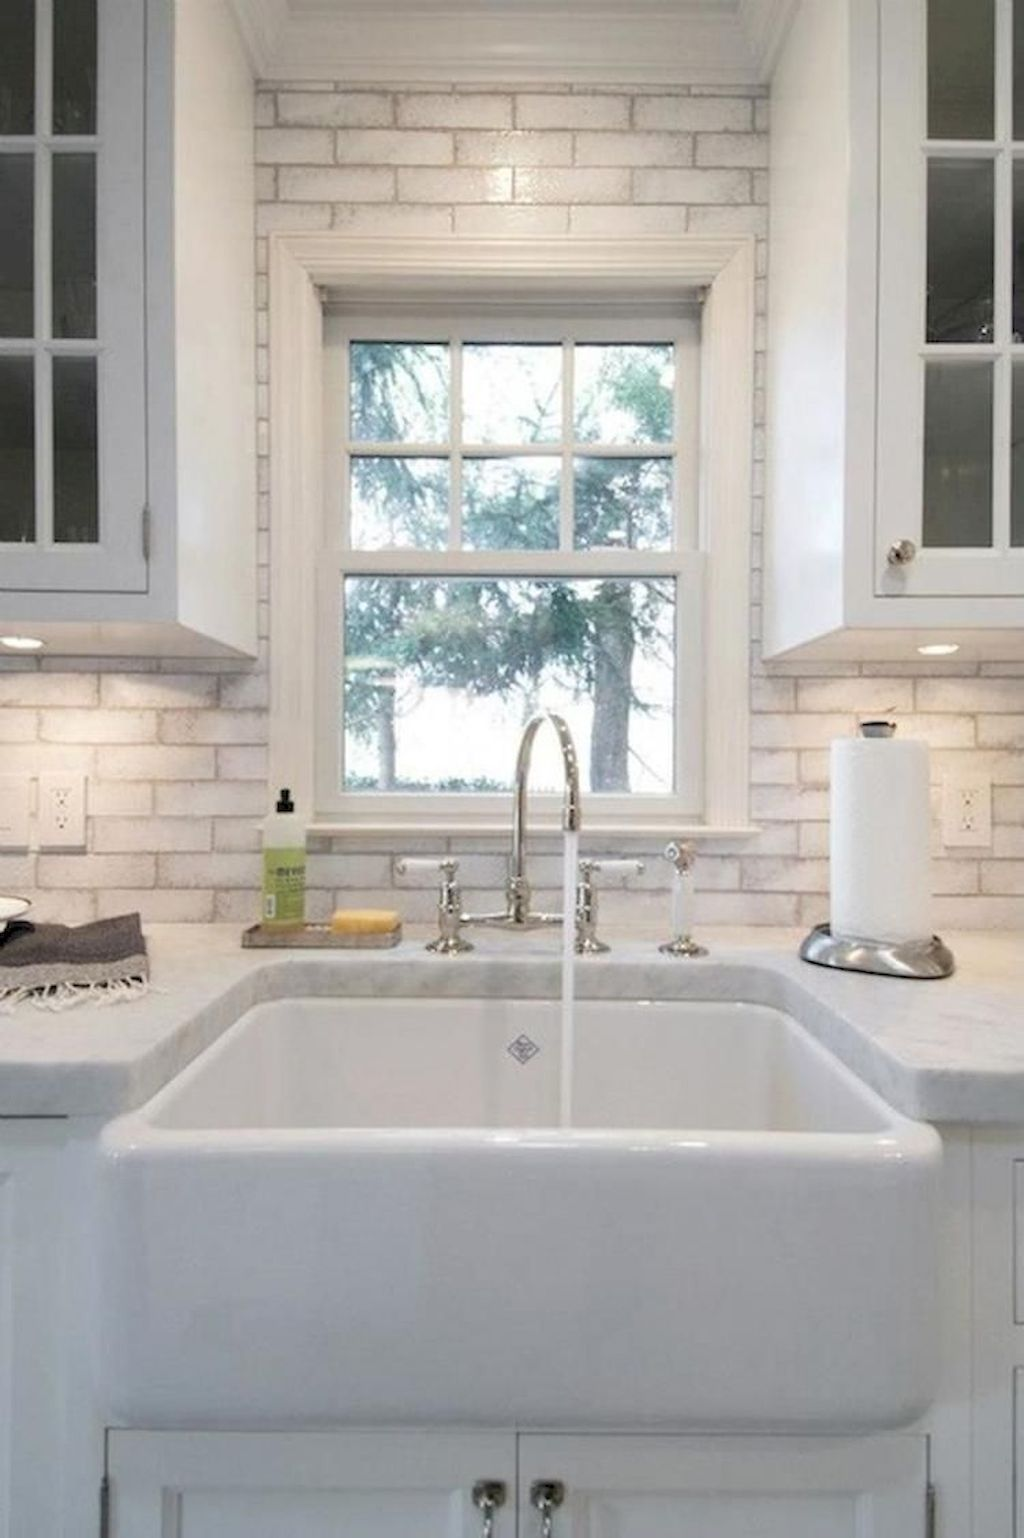 80 farmhouse kitchen backsplash design ideas farmhouse kitchen backsplash rustic kitchen on farmhouse kitchen backsplash id=64410